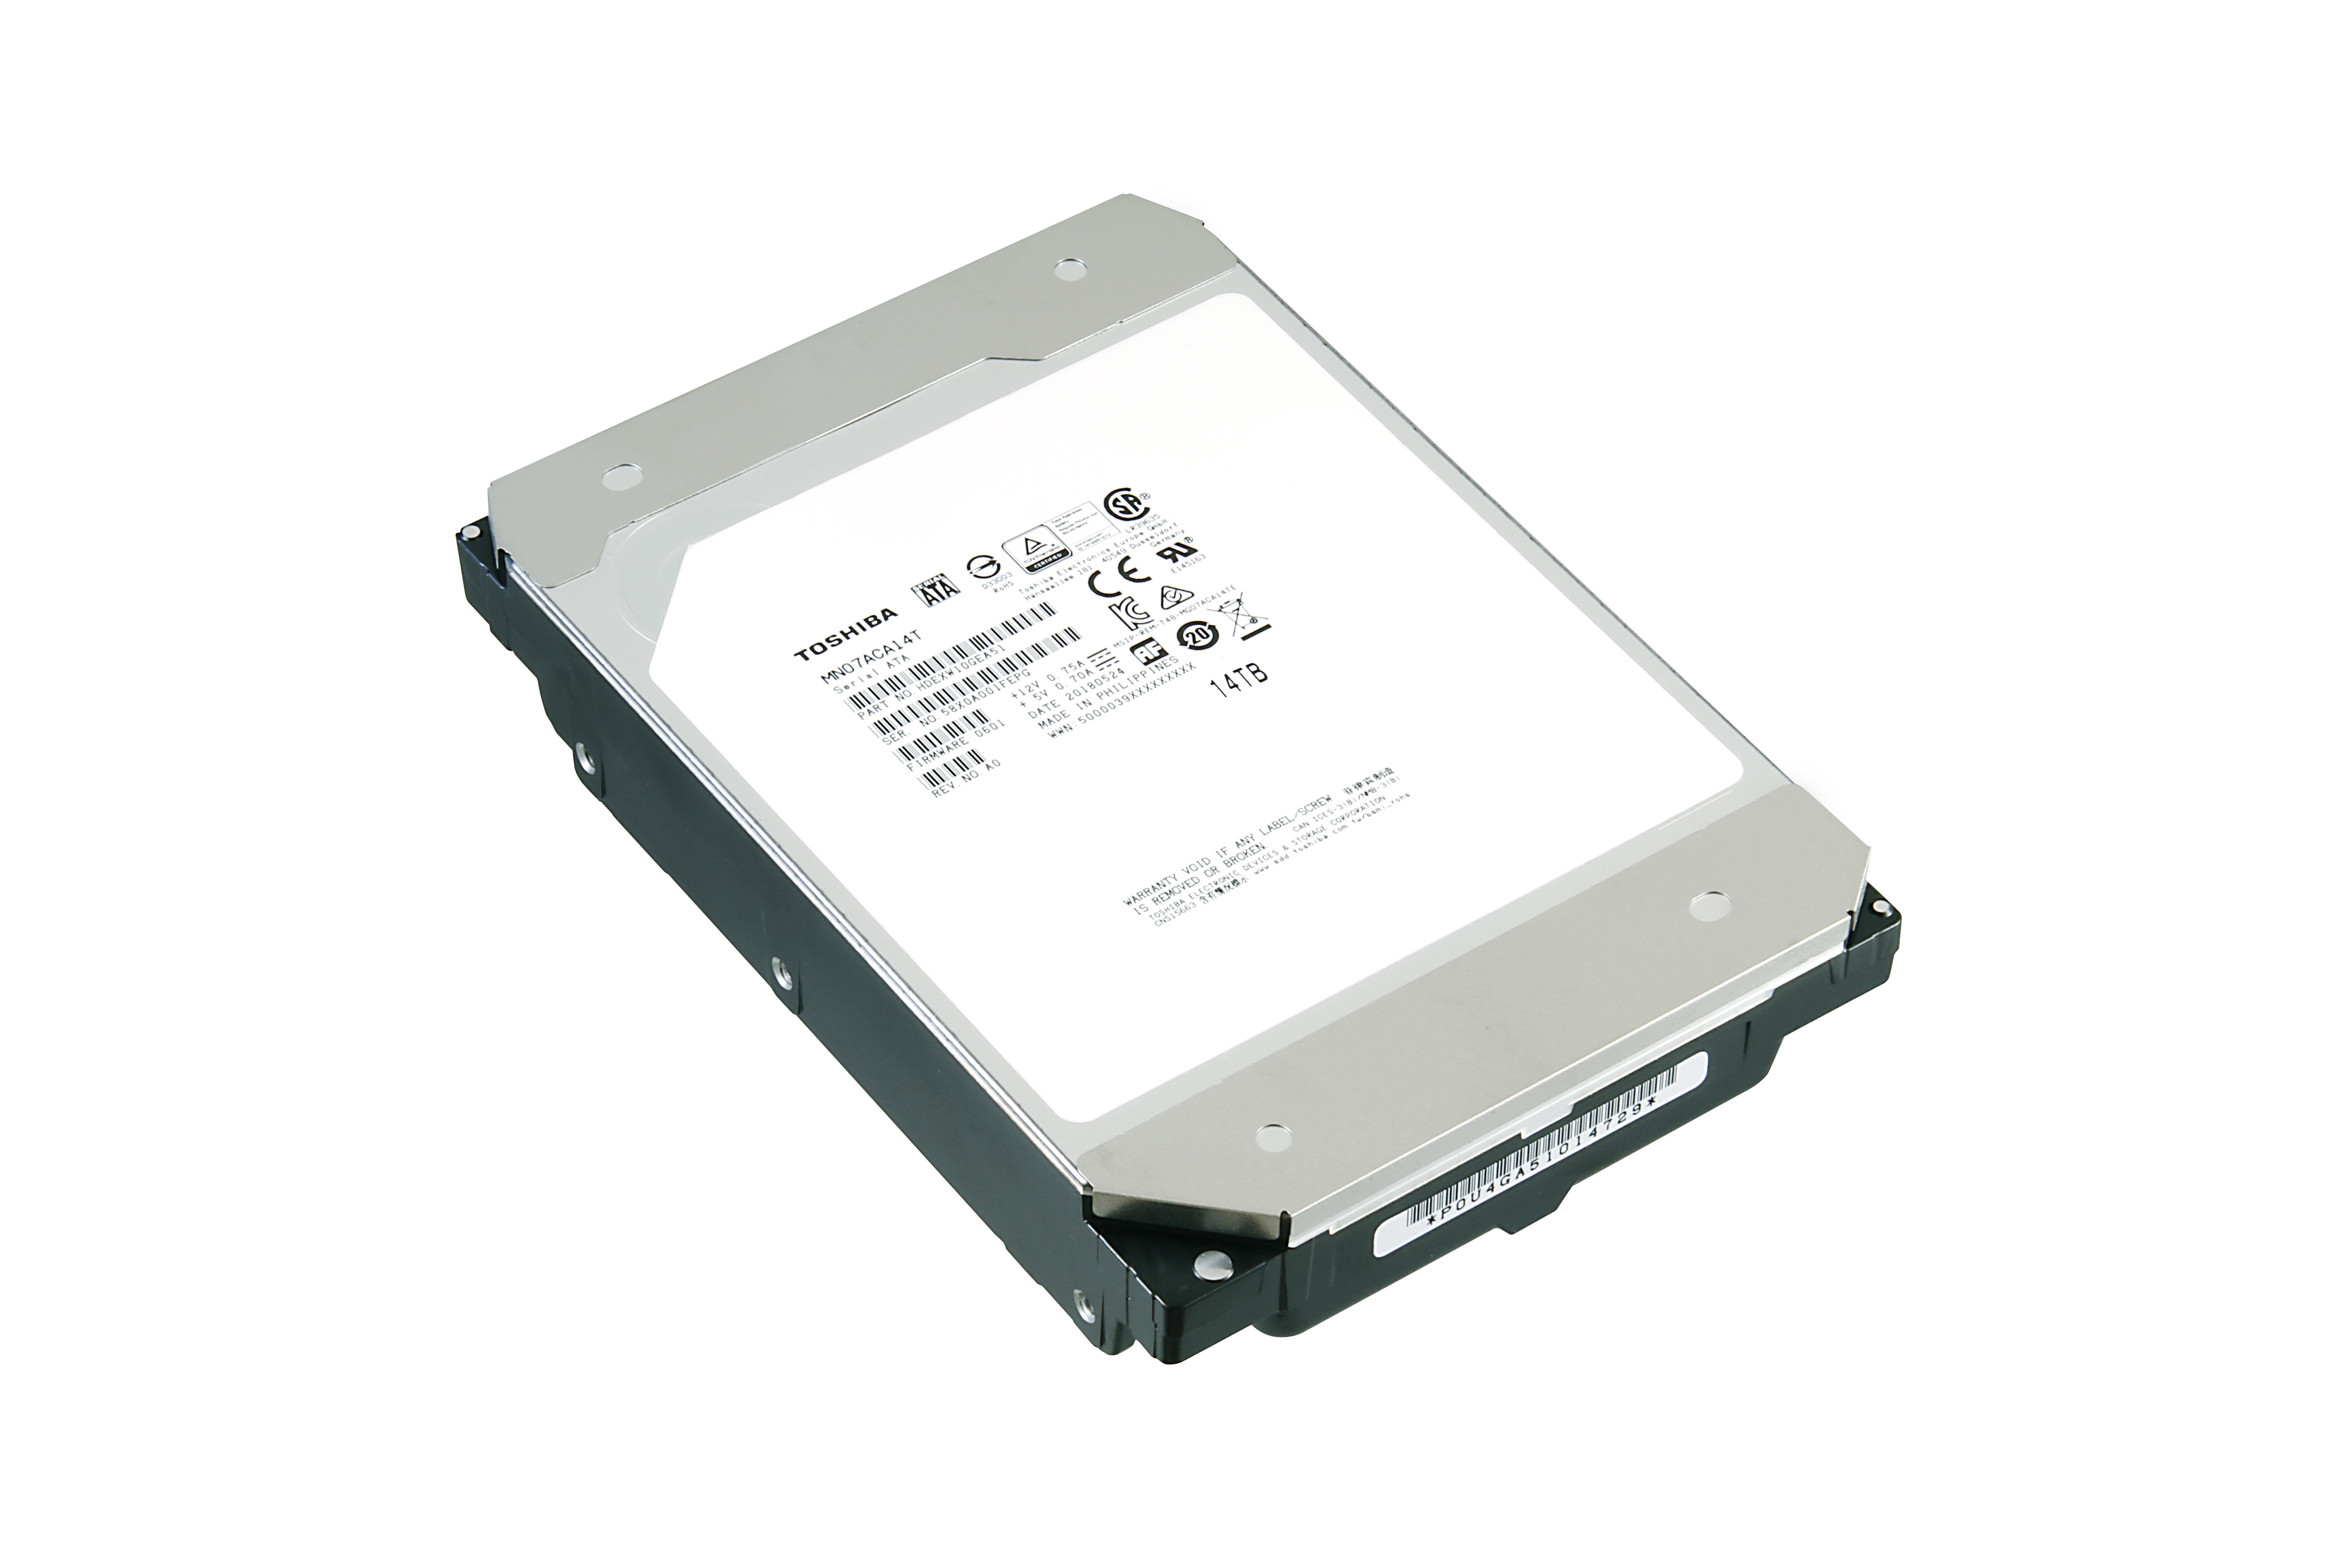 Toshiba Announces New MN07 Series Hard Drives for NAS Platform OEMs